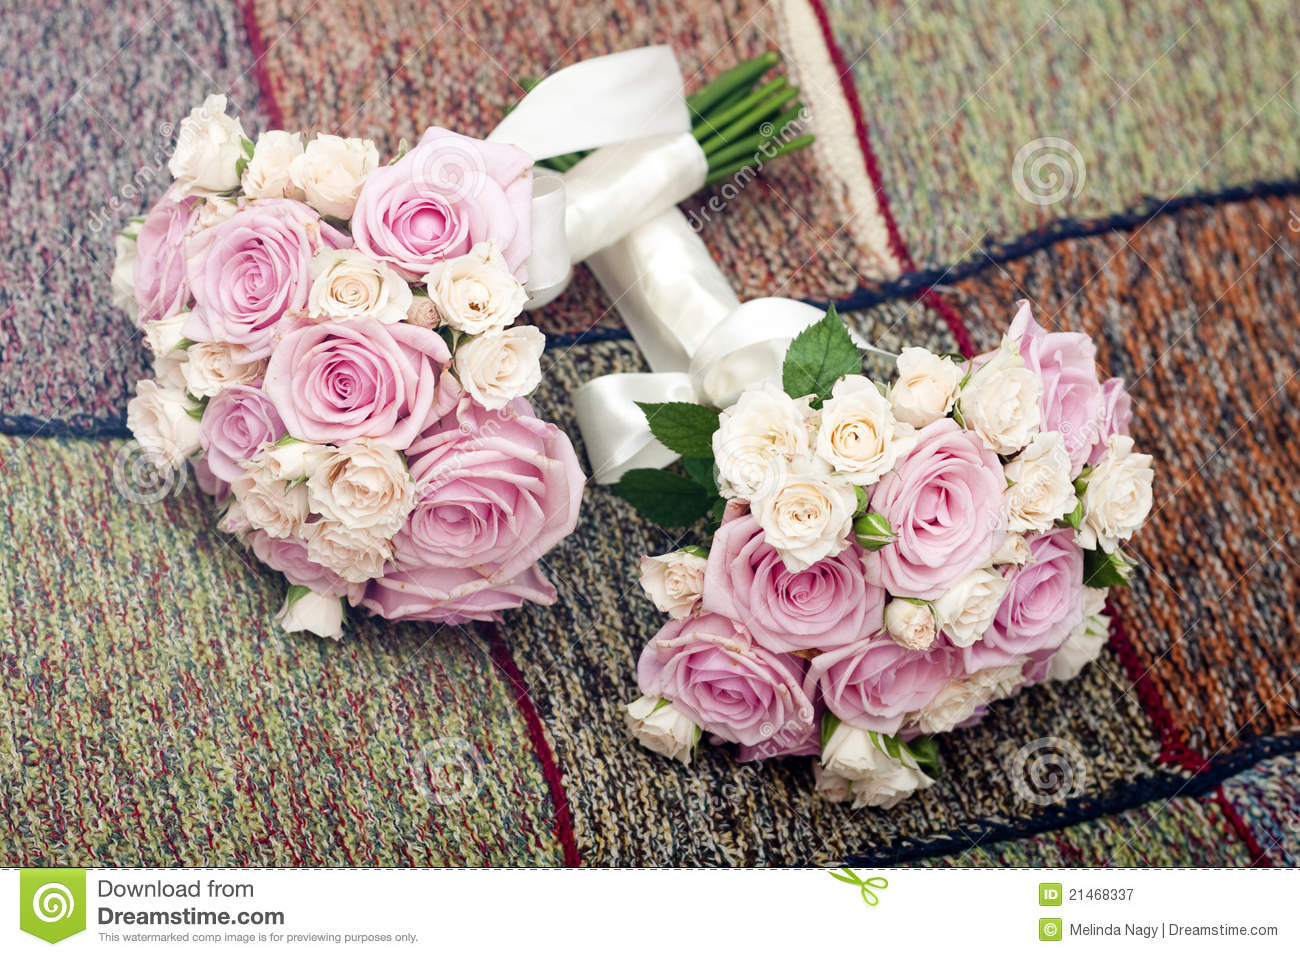 Wedding bouquet stock image. Image of floral, diamond - 21468337